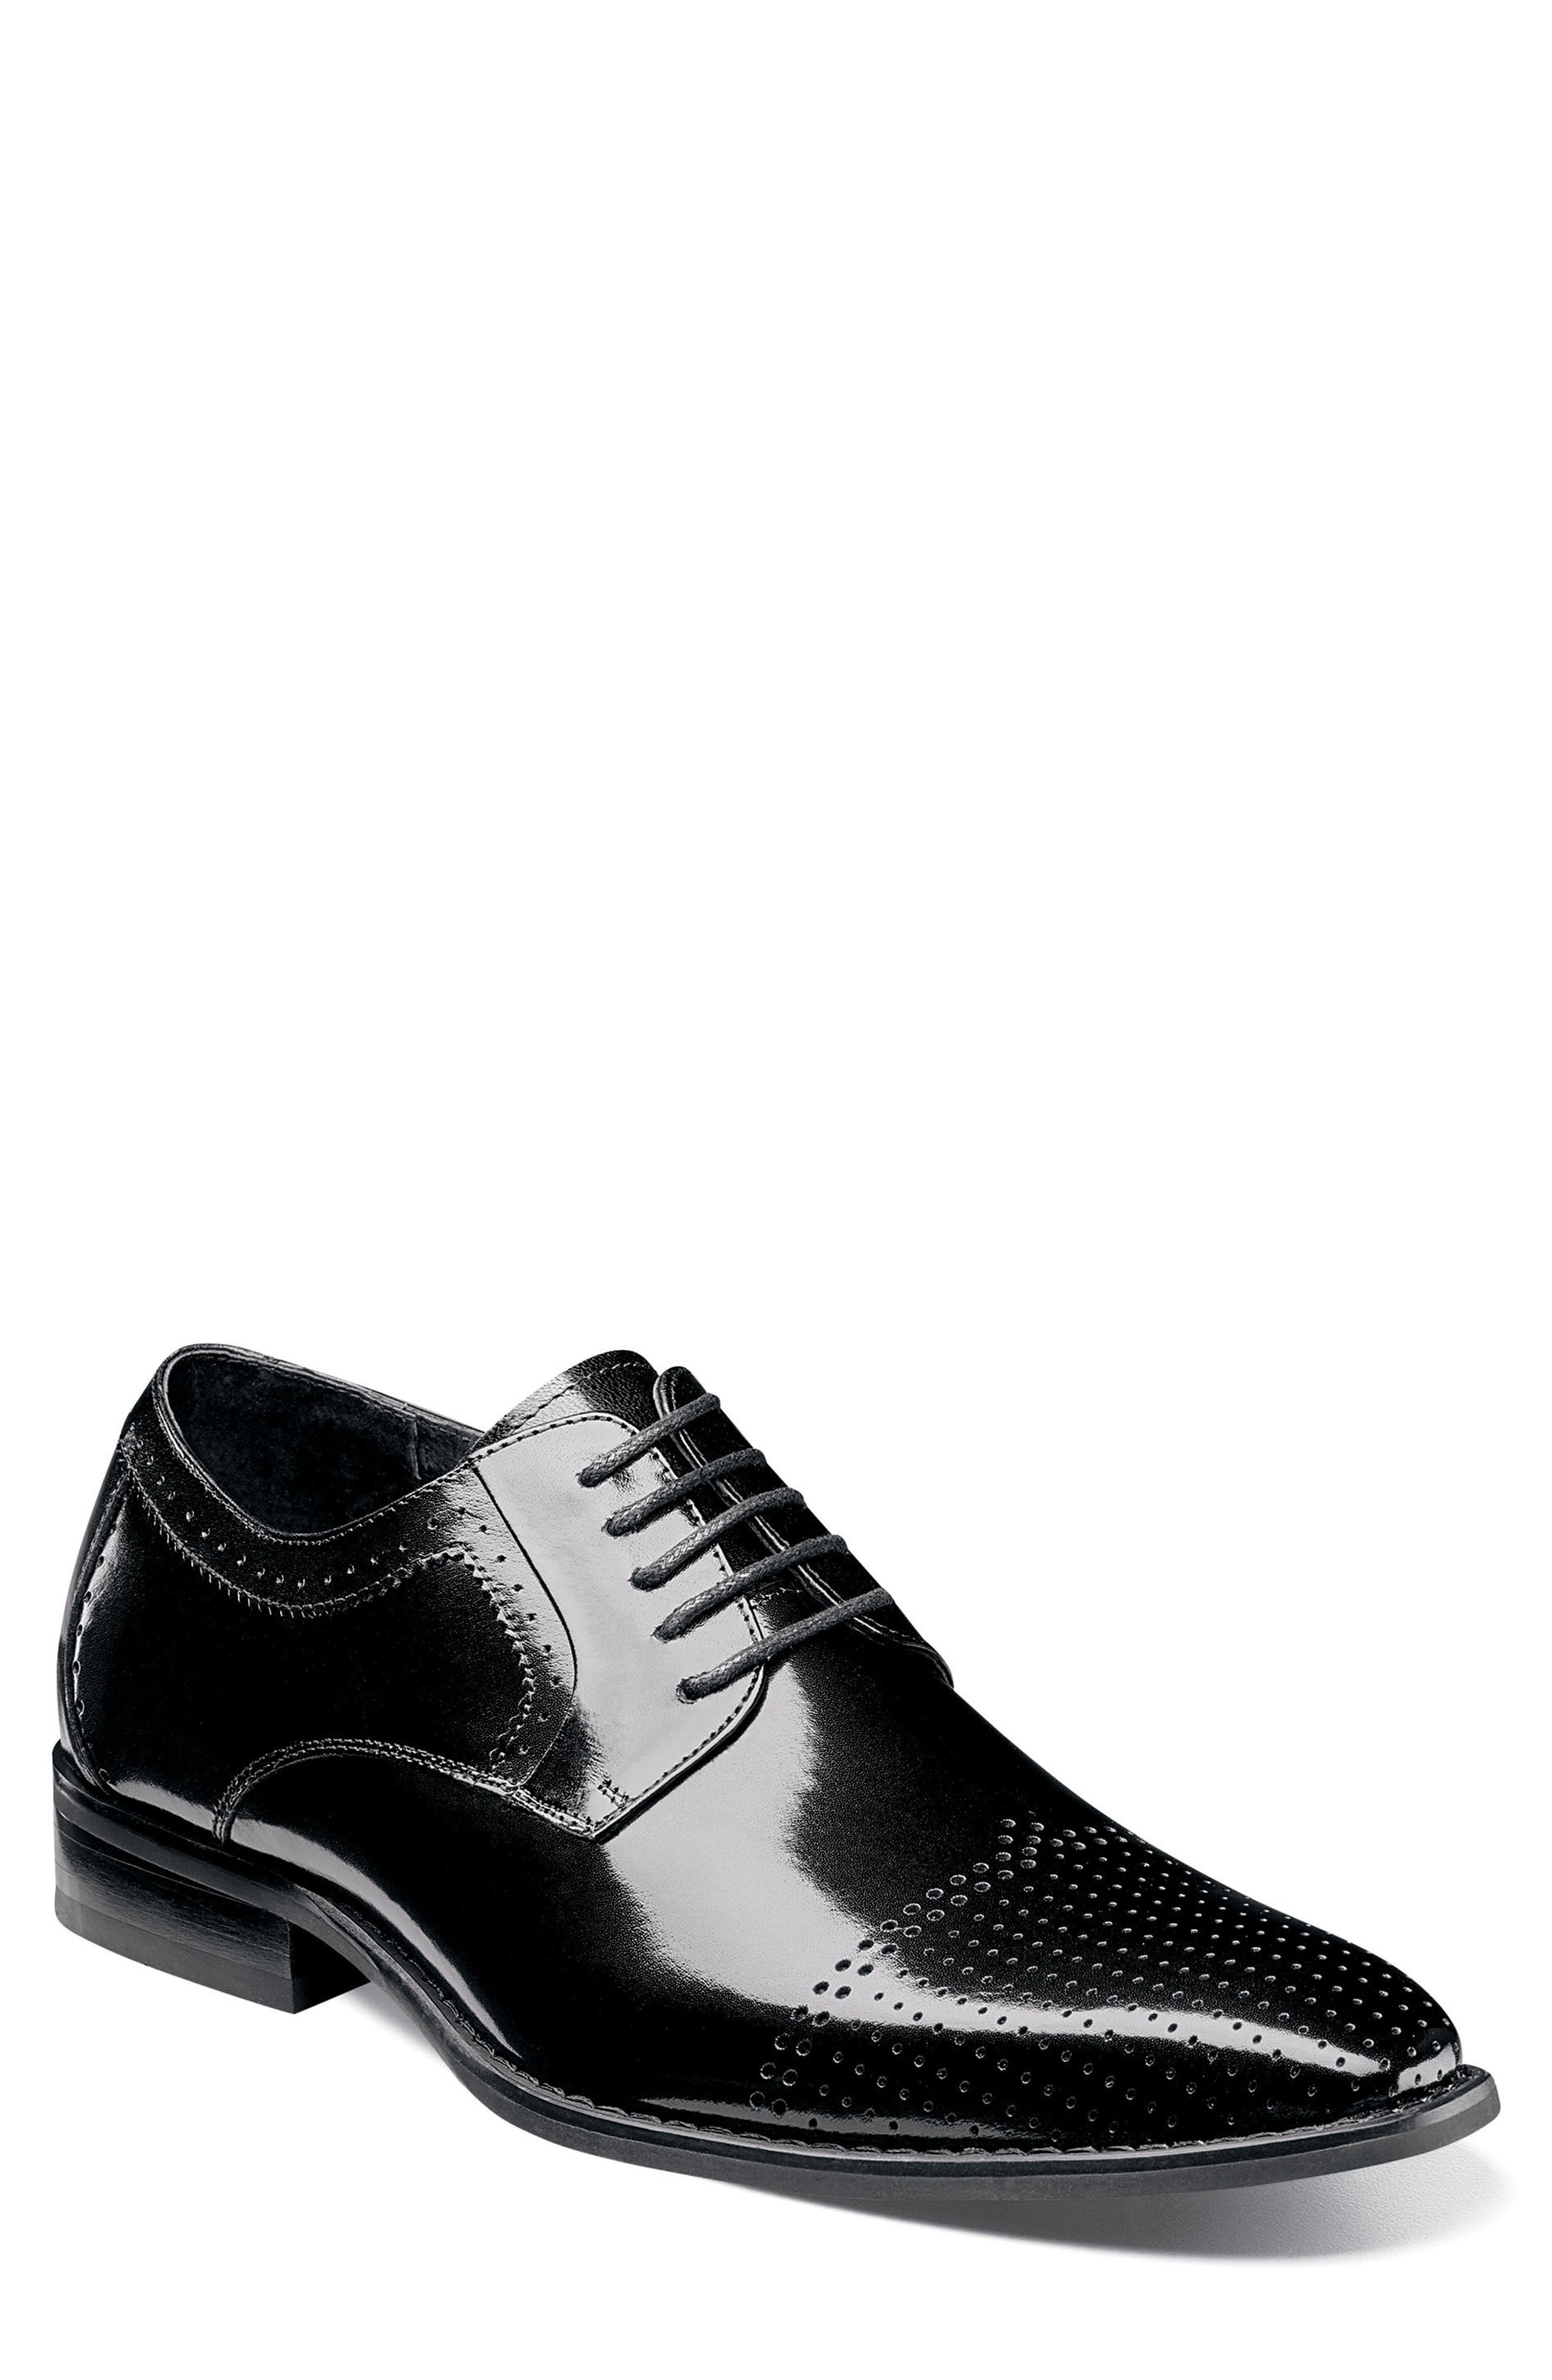 Sanborn Perforated Cap Toe Derby,                         Main,                         color, BLACK LEATHER